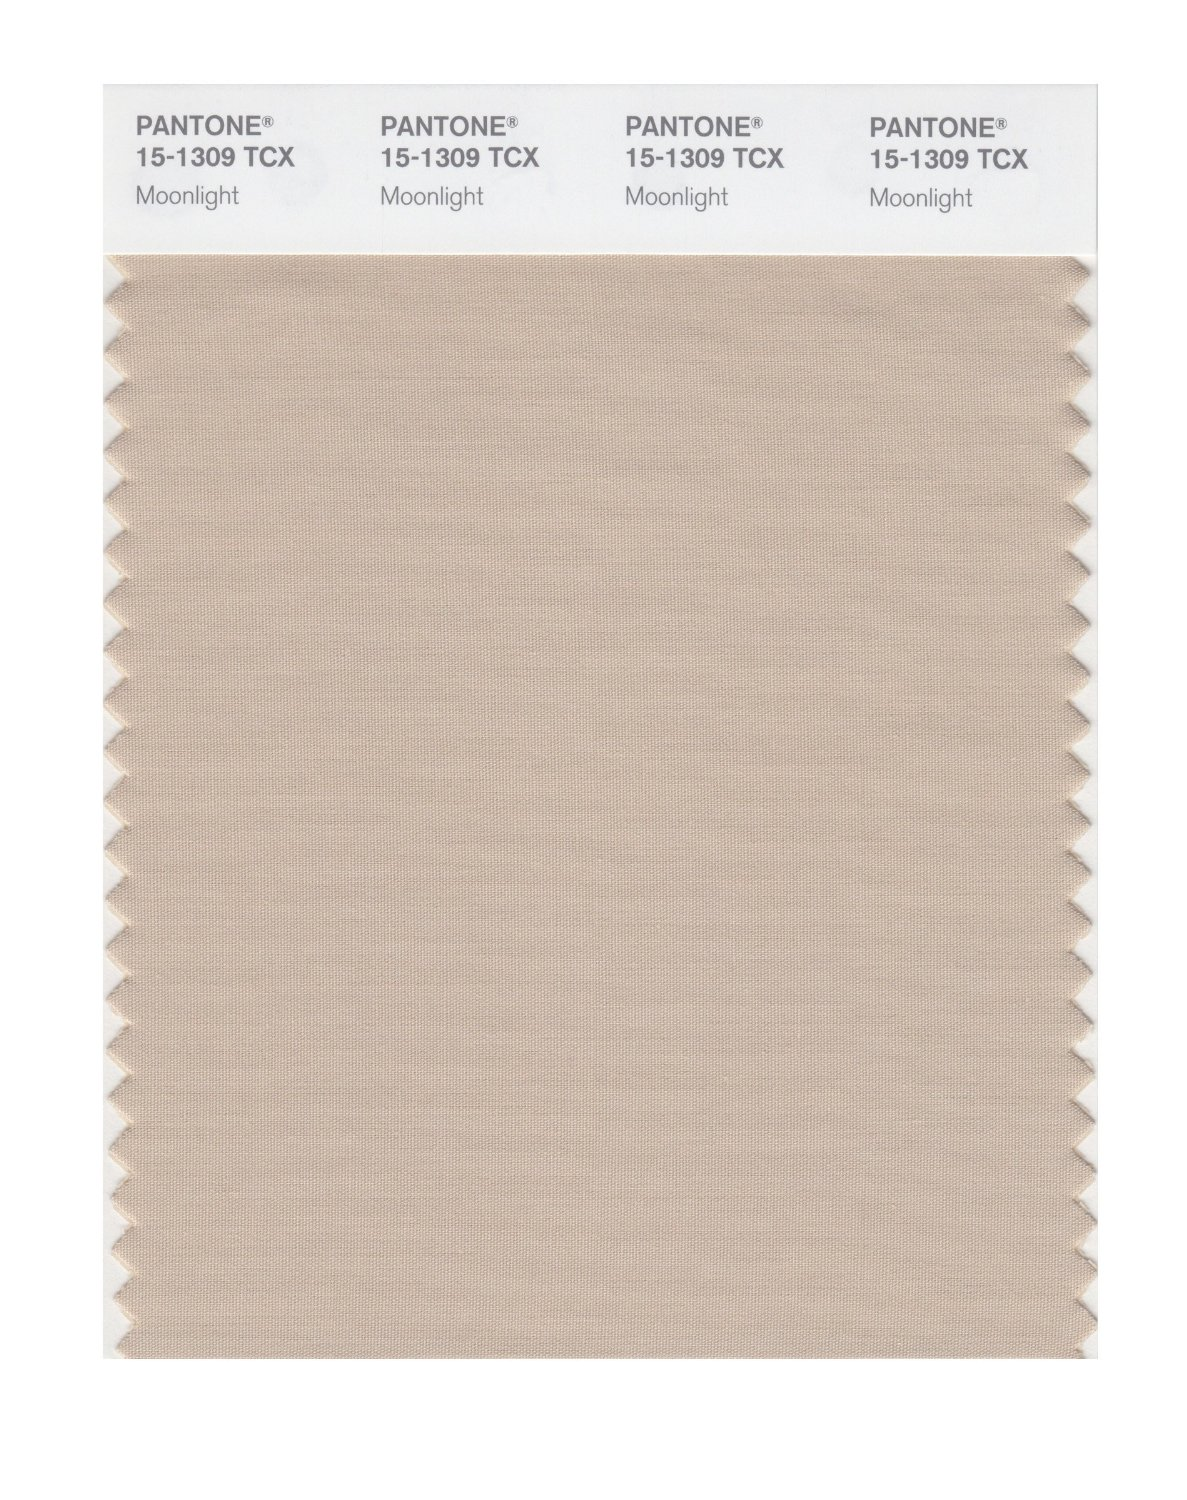 Pantone Smart Swatch 15-1309 Moonlight